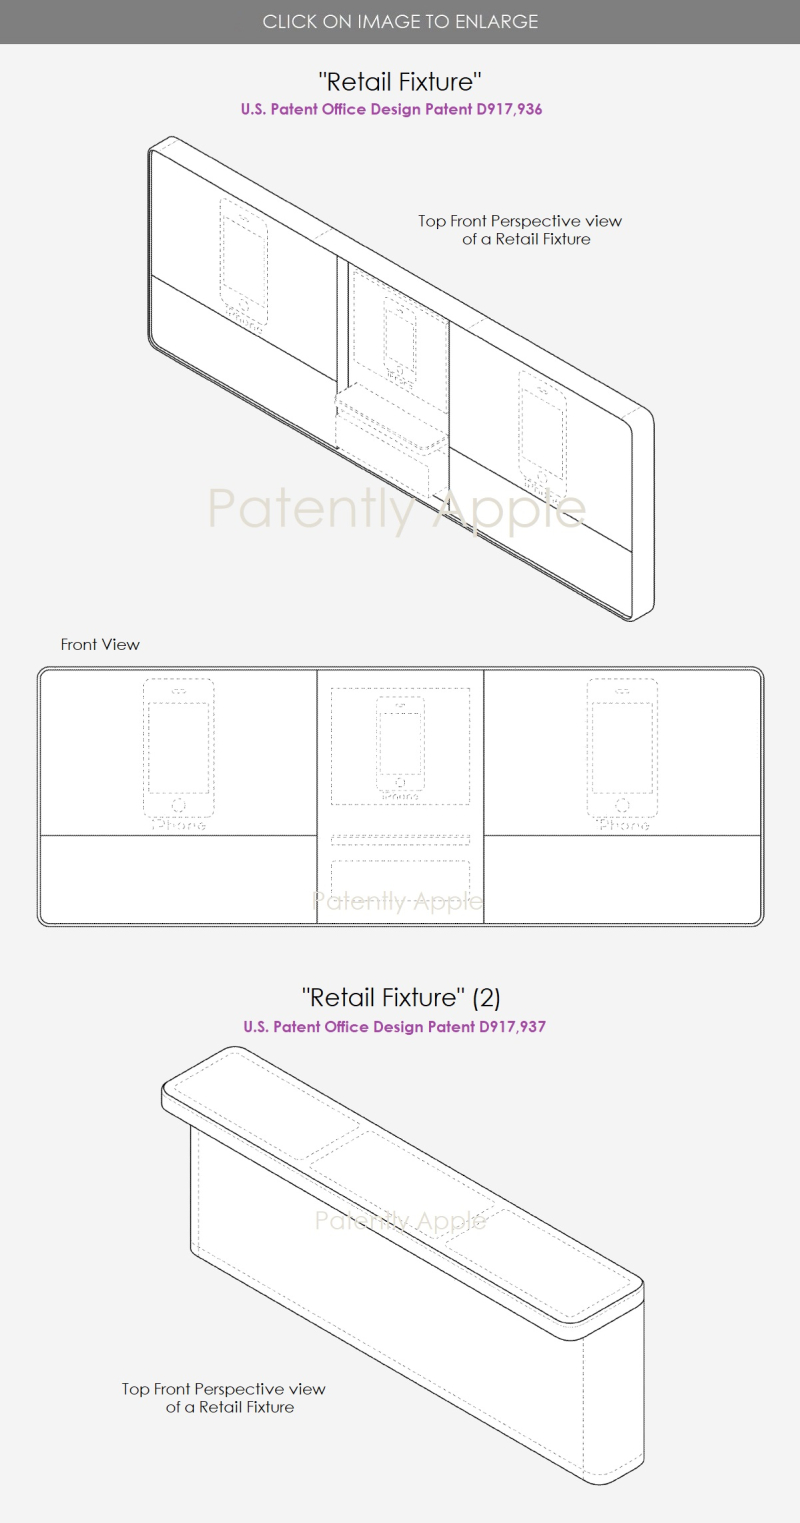 5 - two US Apple design patents  Retail Fixtures